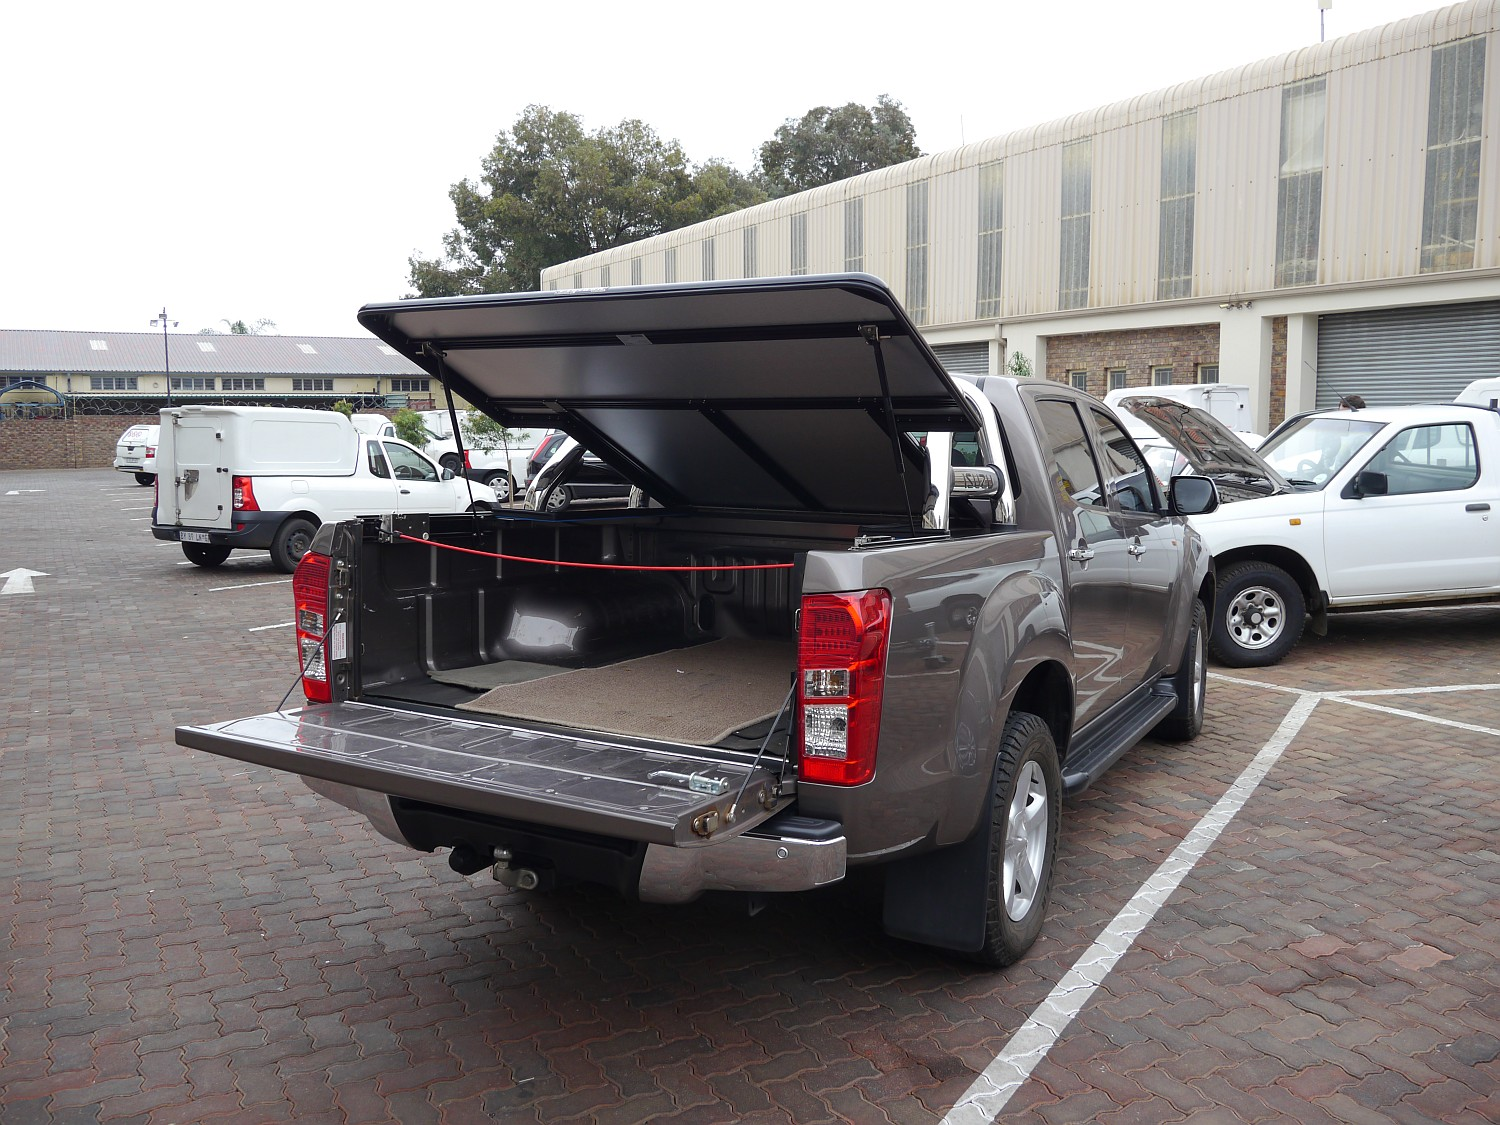 Rigidek Laderaumabdeckung - Isuzu D-Max - Double Cab mit Sports Bar 1003.JPG